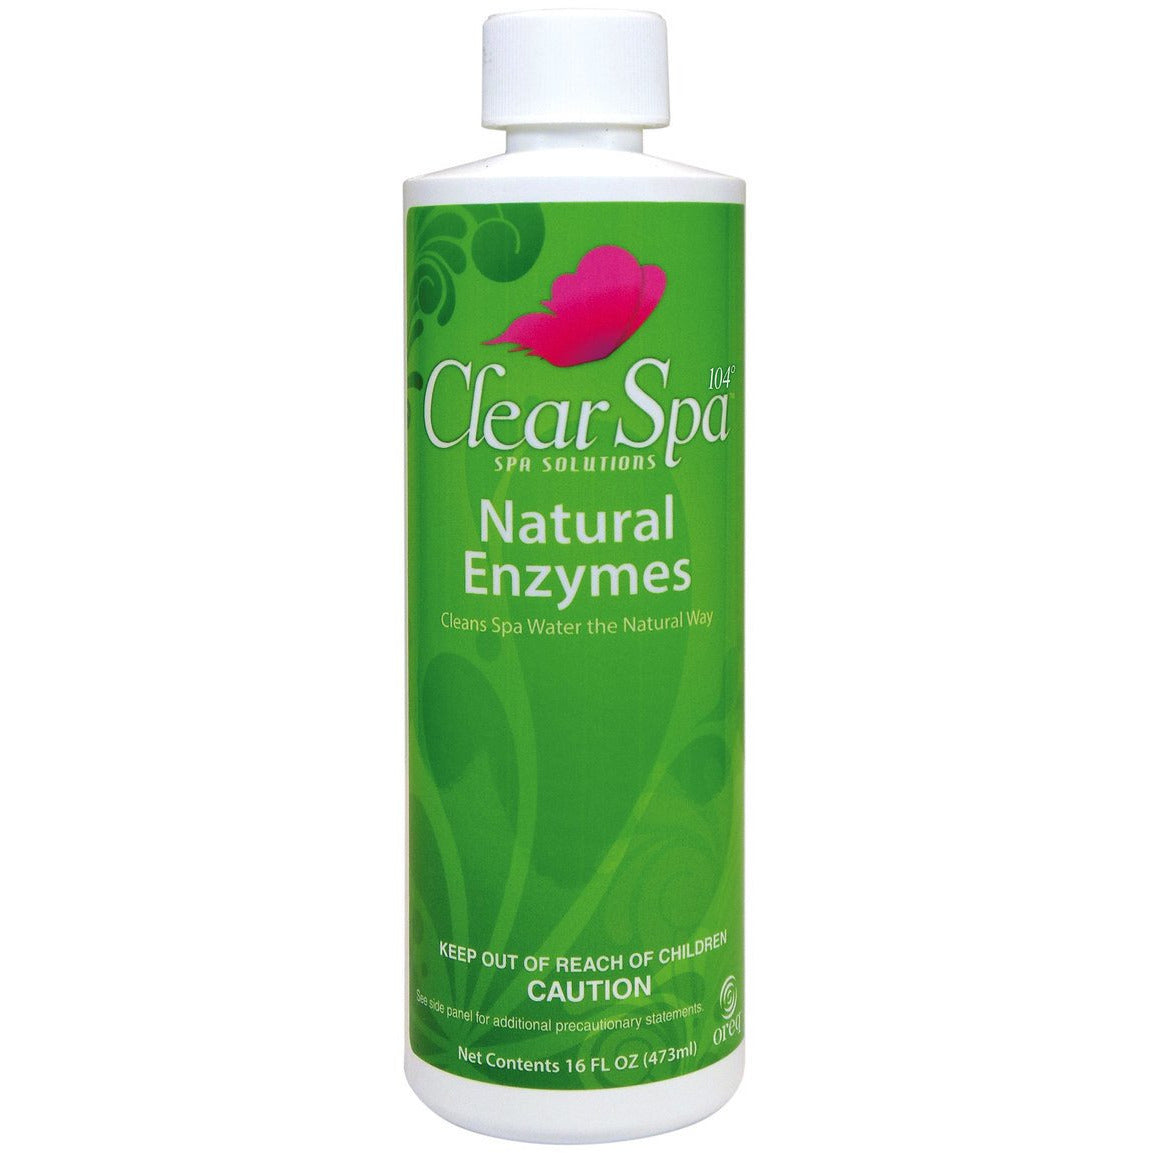 ClearSpa Natural Enzymes